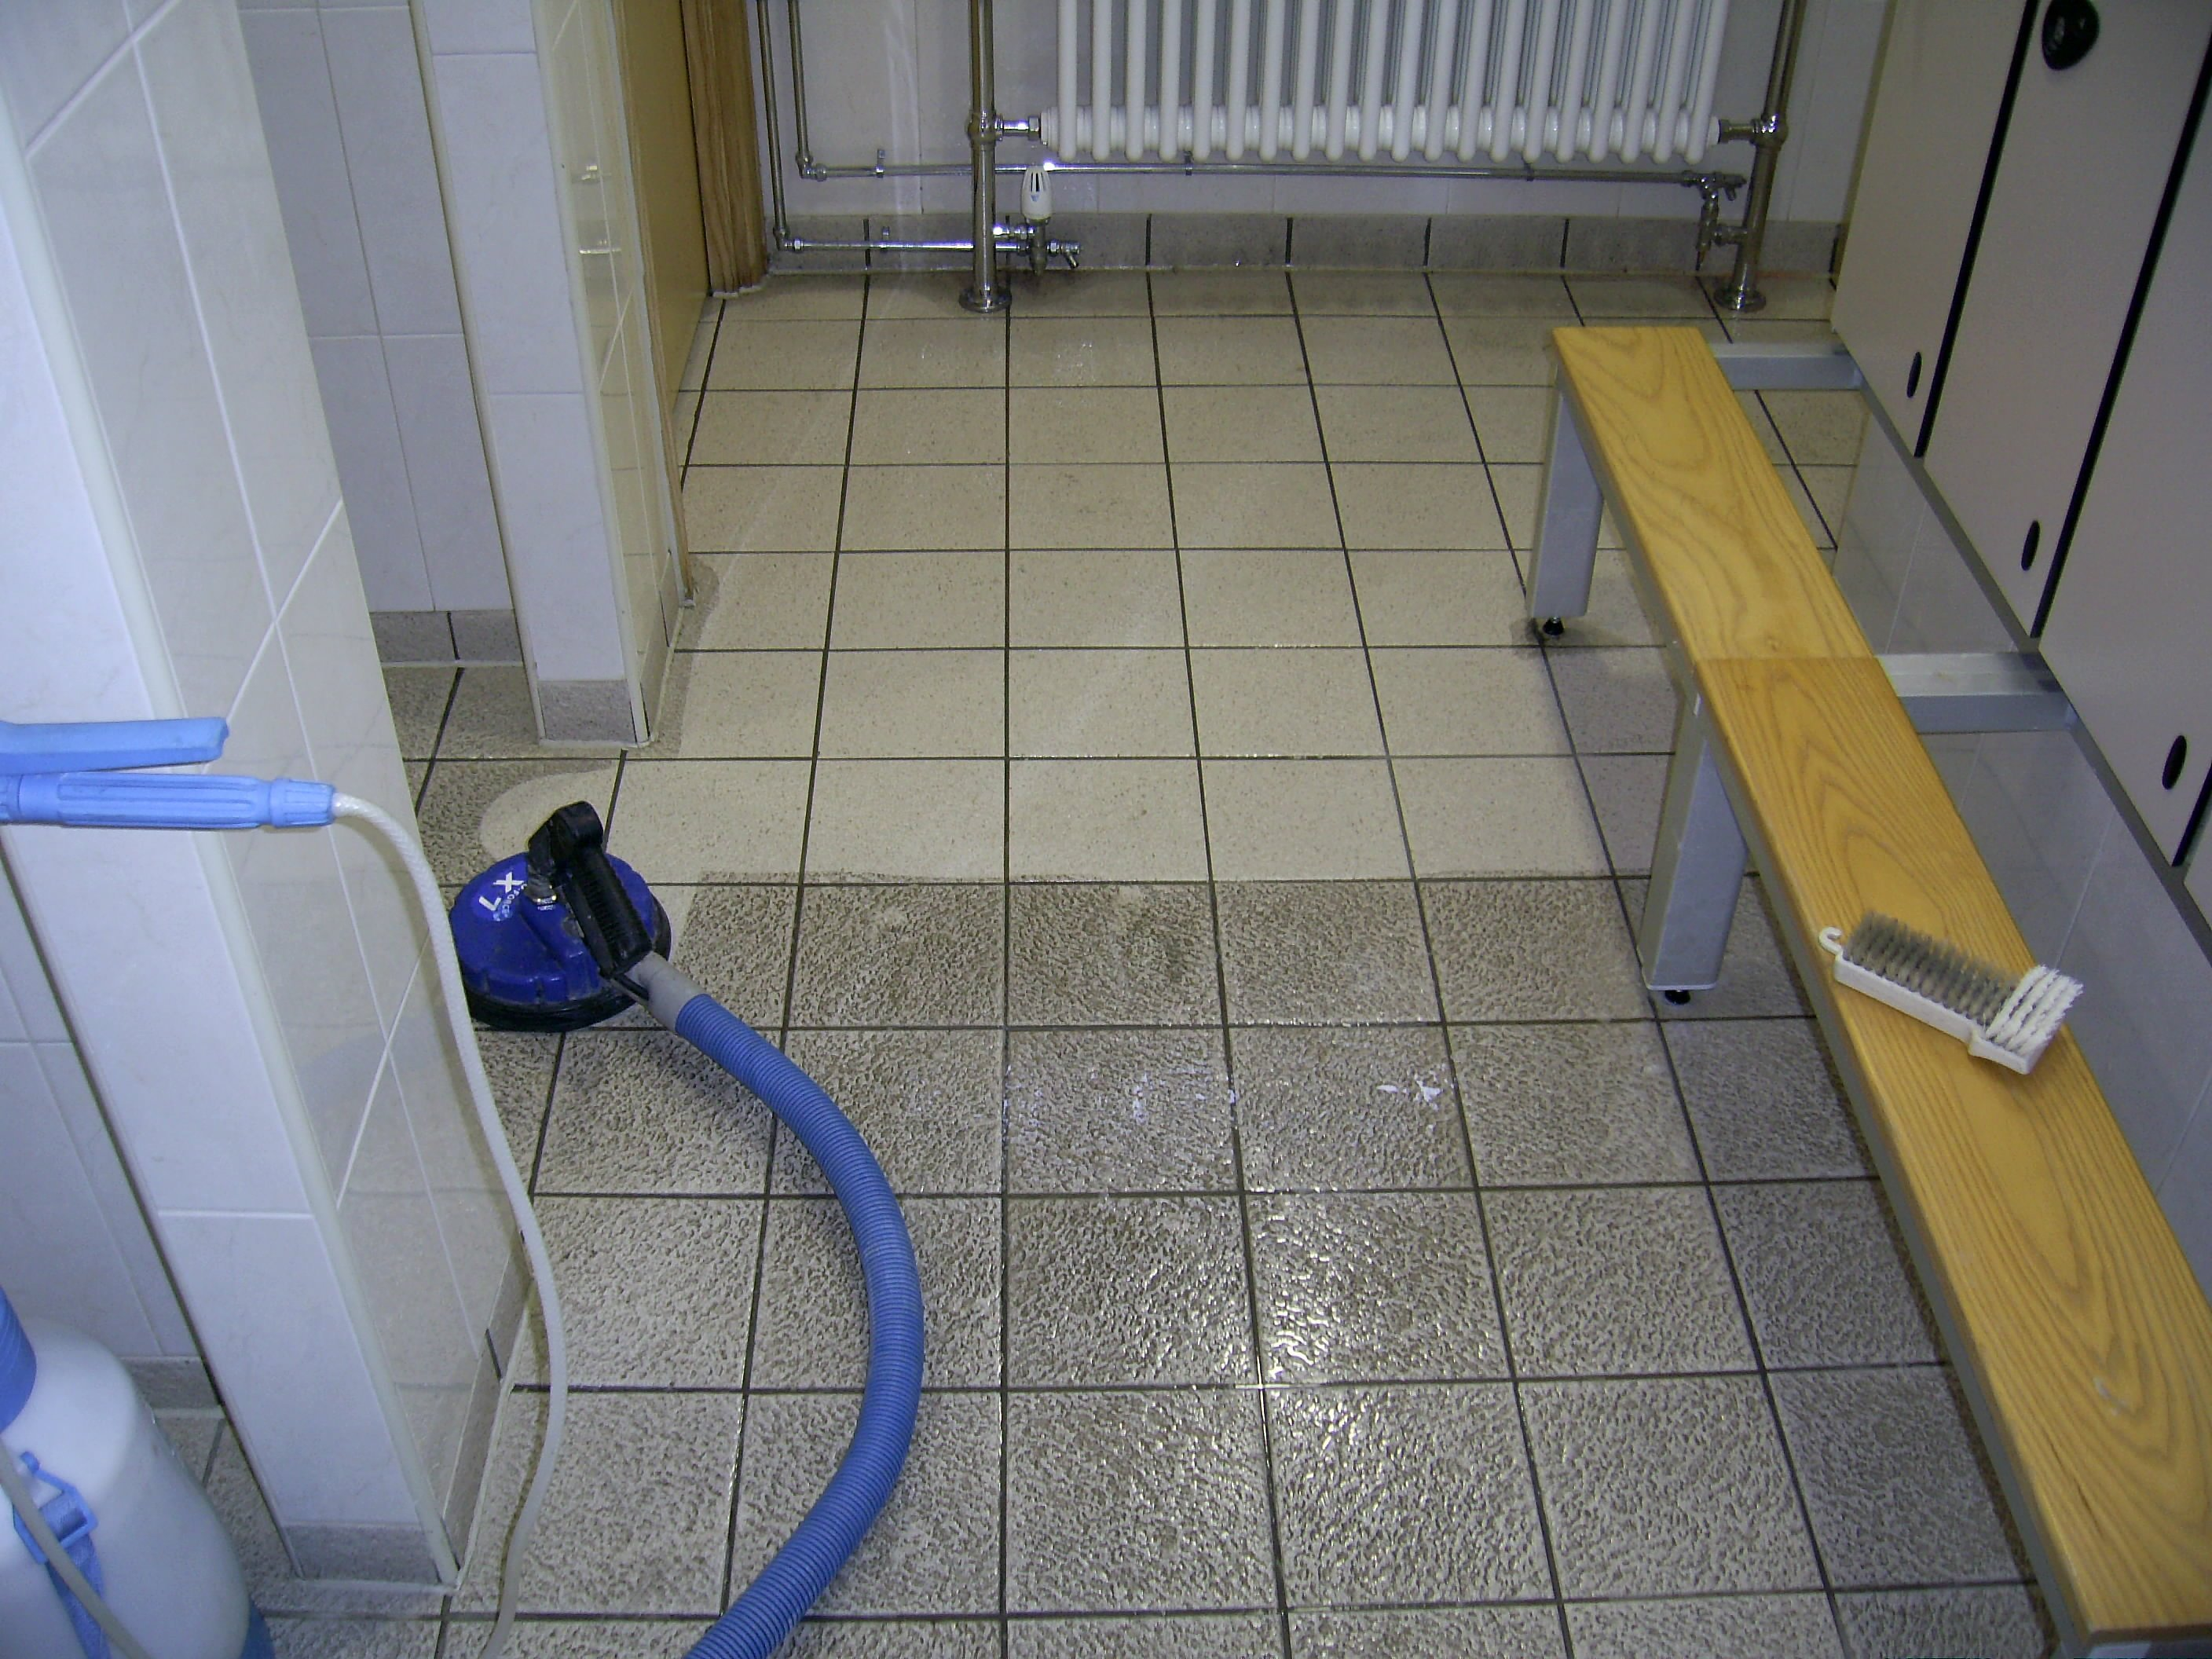 professional tile cleaning  grout cleaning  sealing and